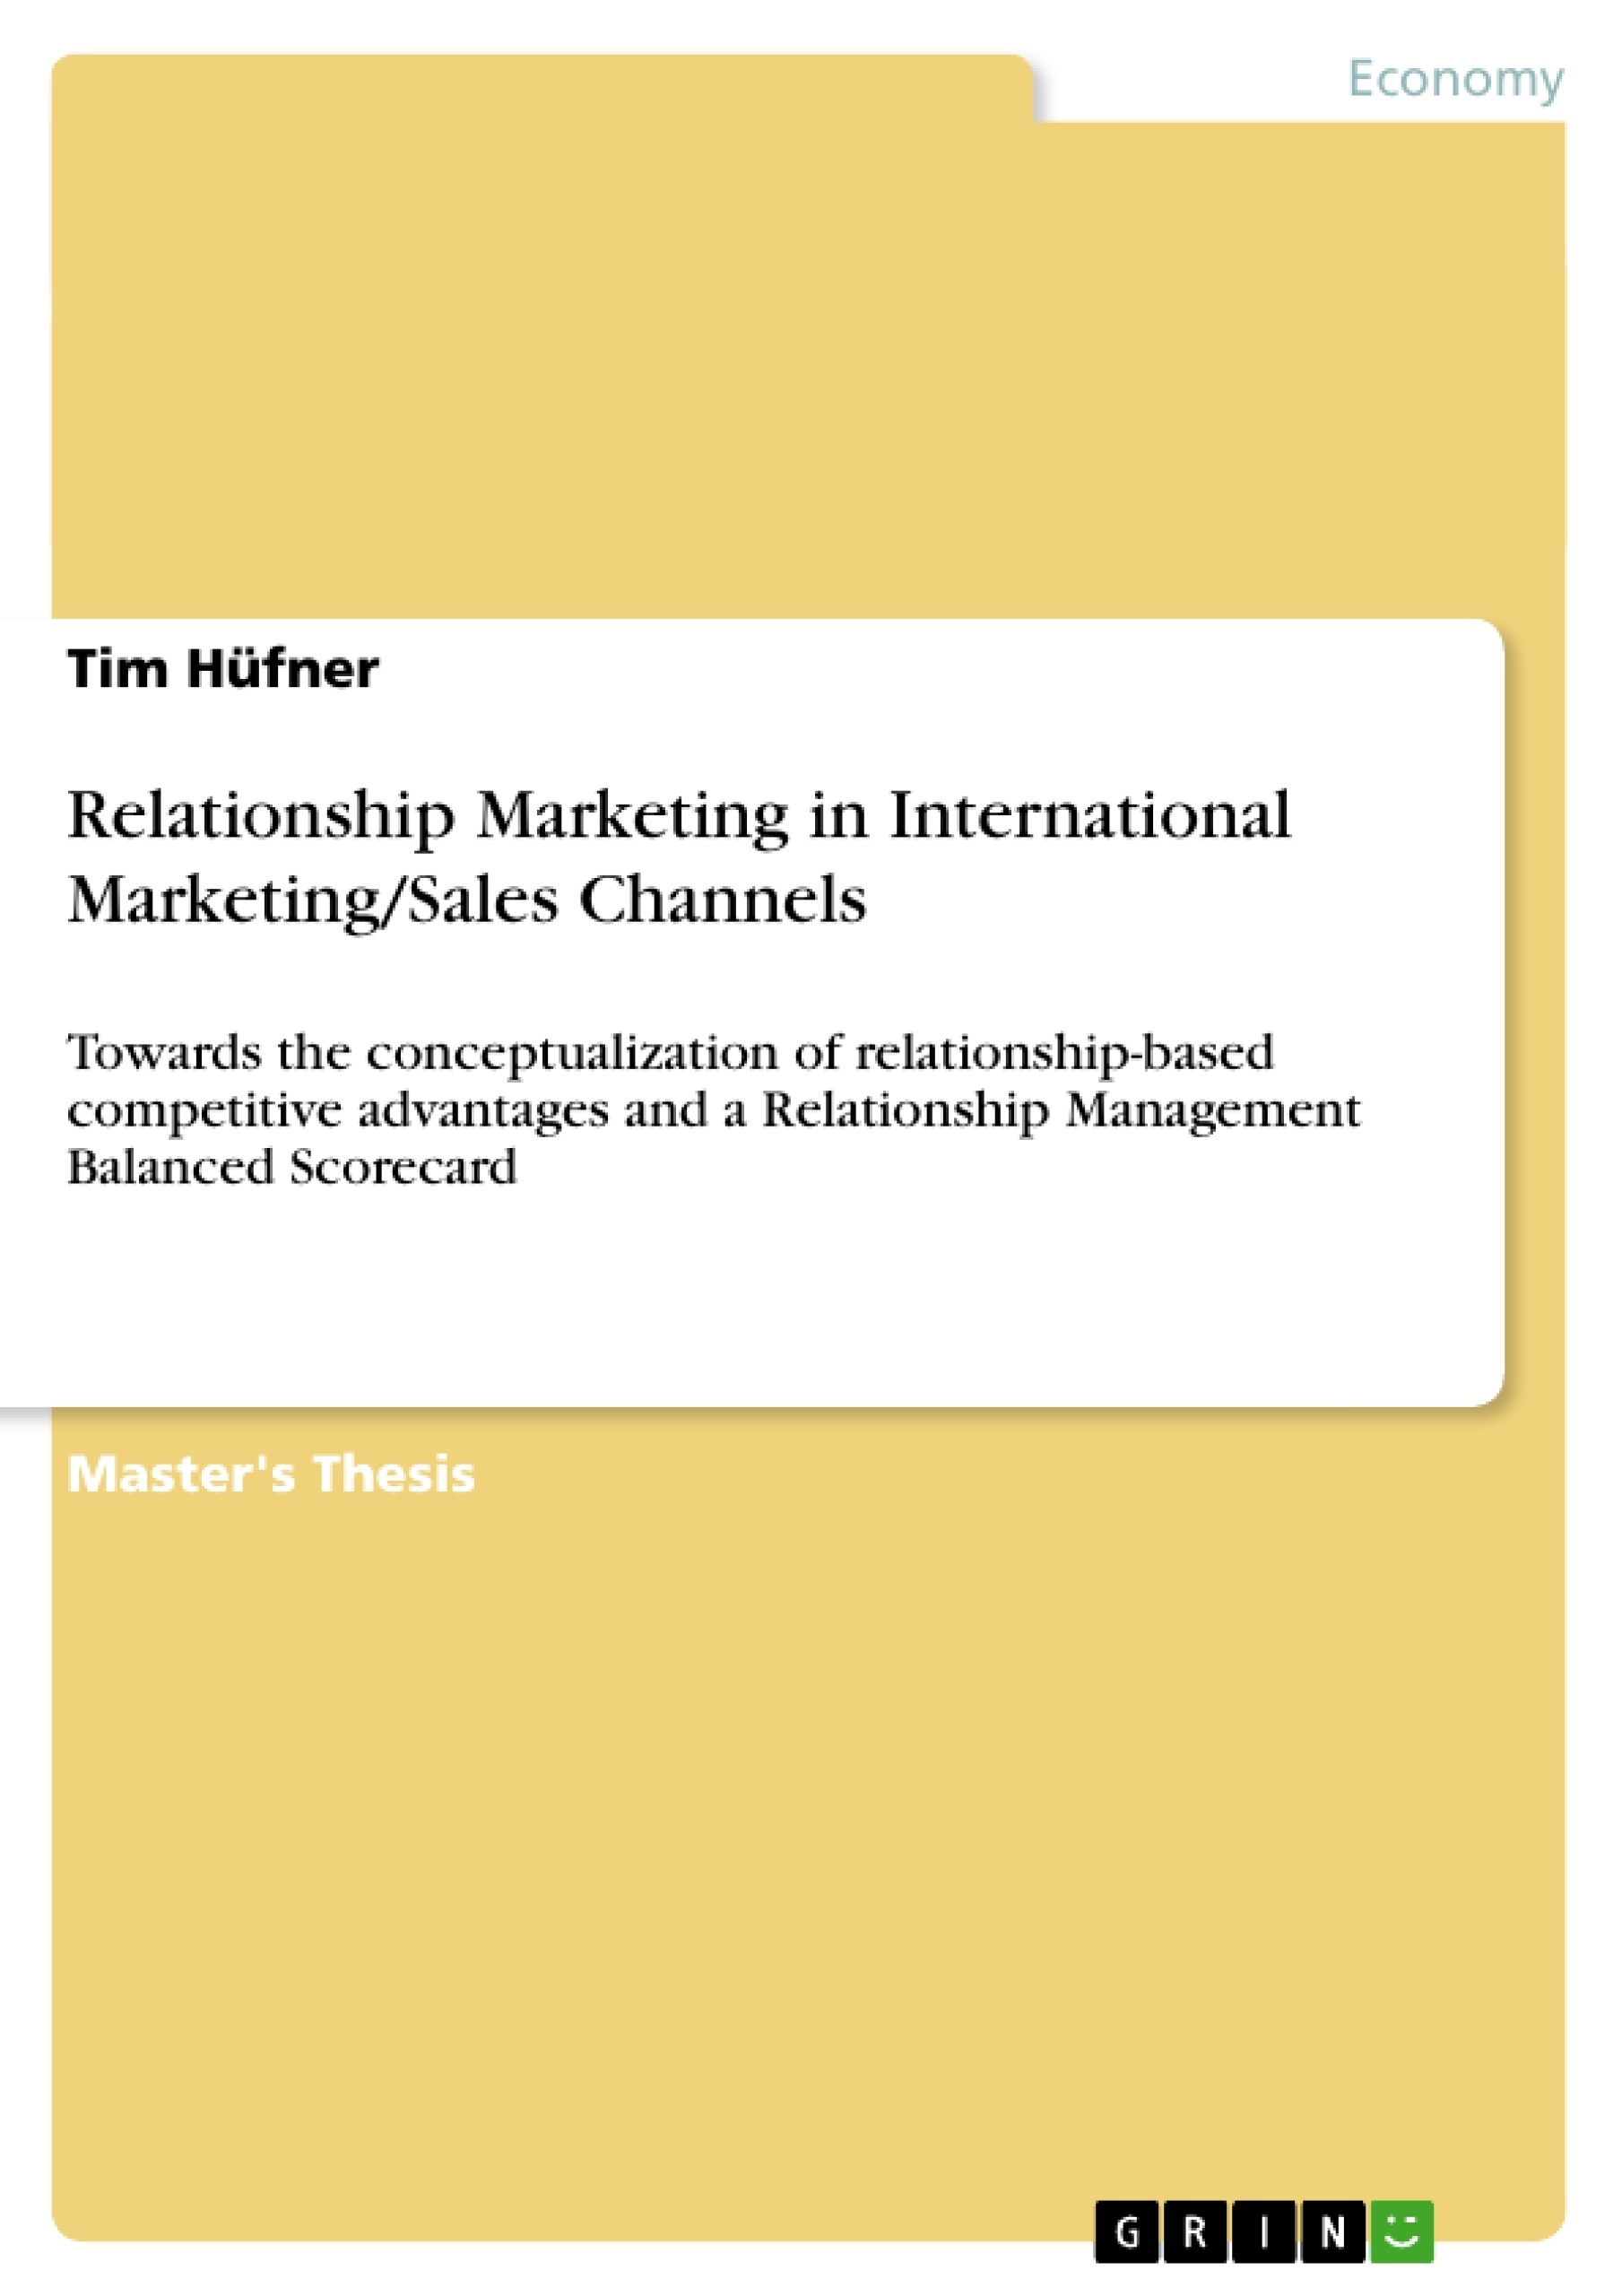 relationship marketing bachelor thesis Social media marketing in a small business: a relationship marketing this chapter provides a brief overview of the study presented in this thesis.